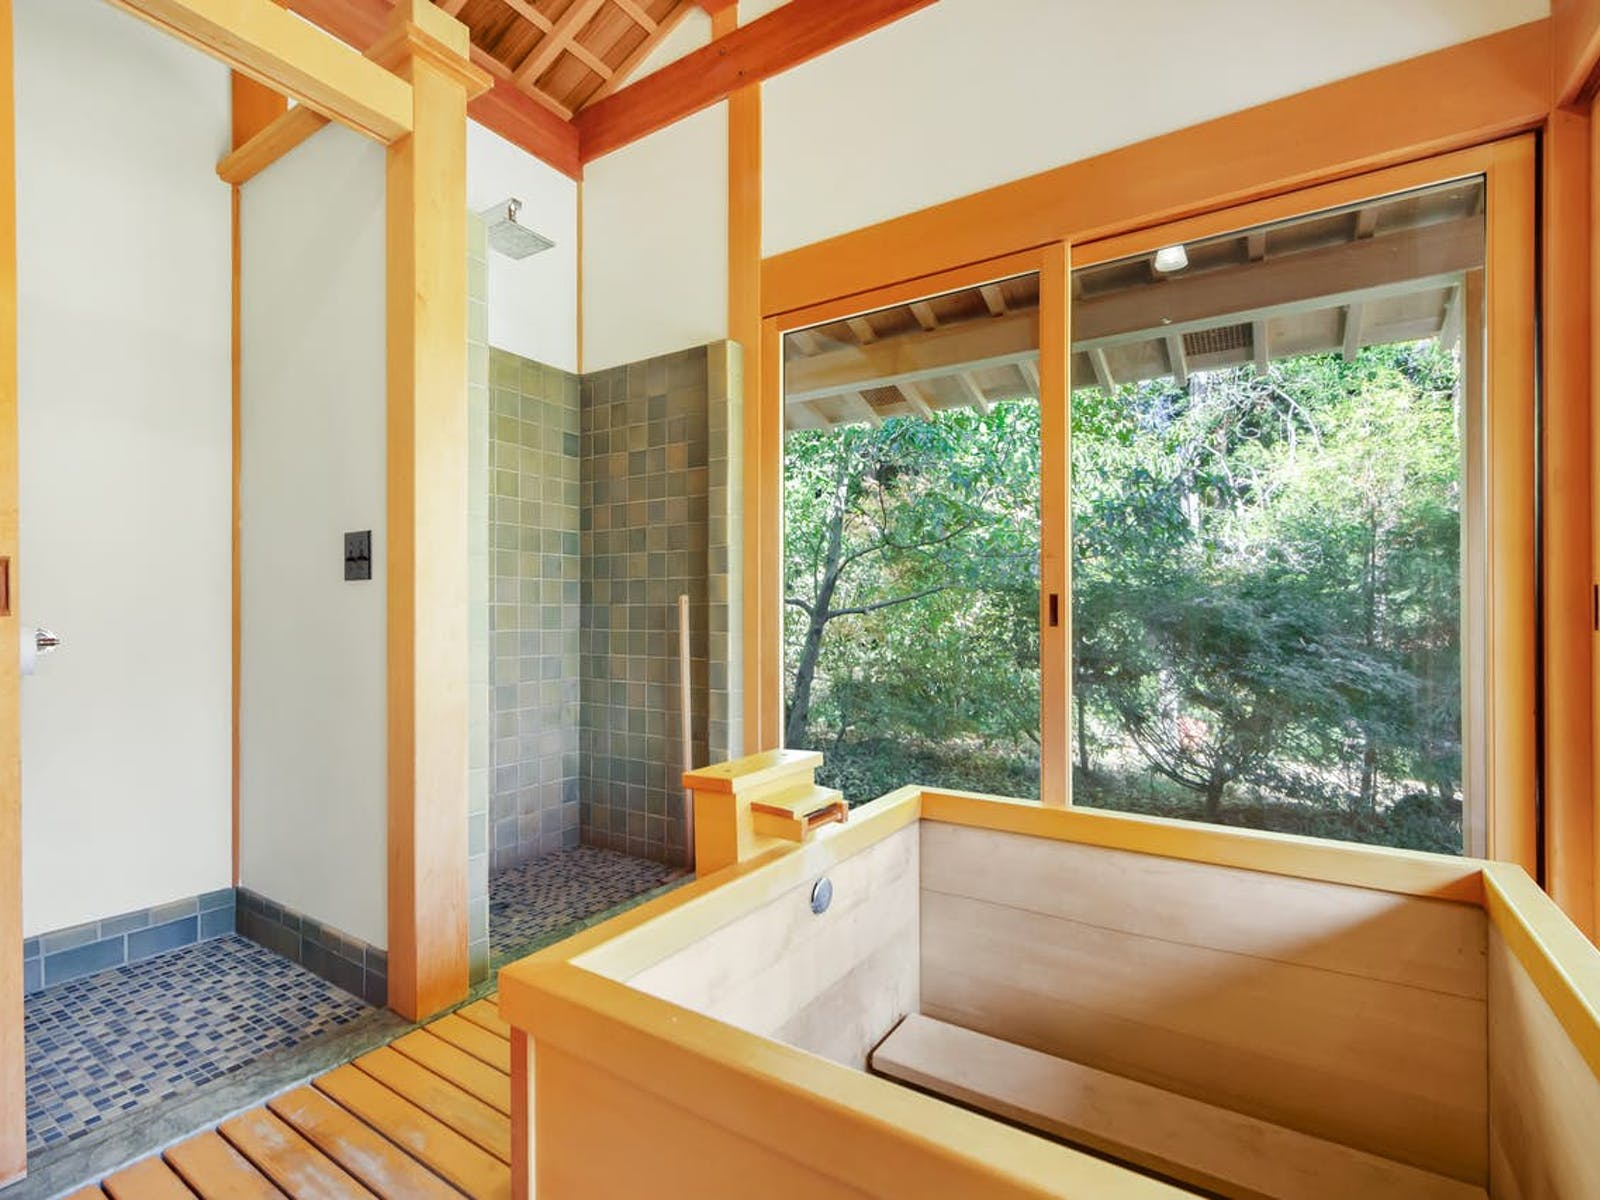 a traditional Japanese tea and bath house that includes a cedar soaking tub